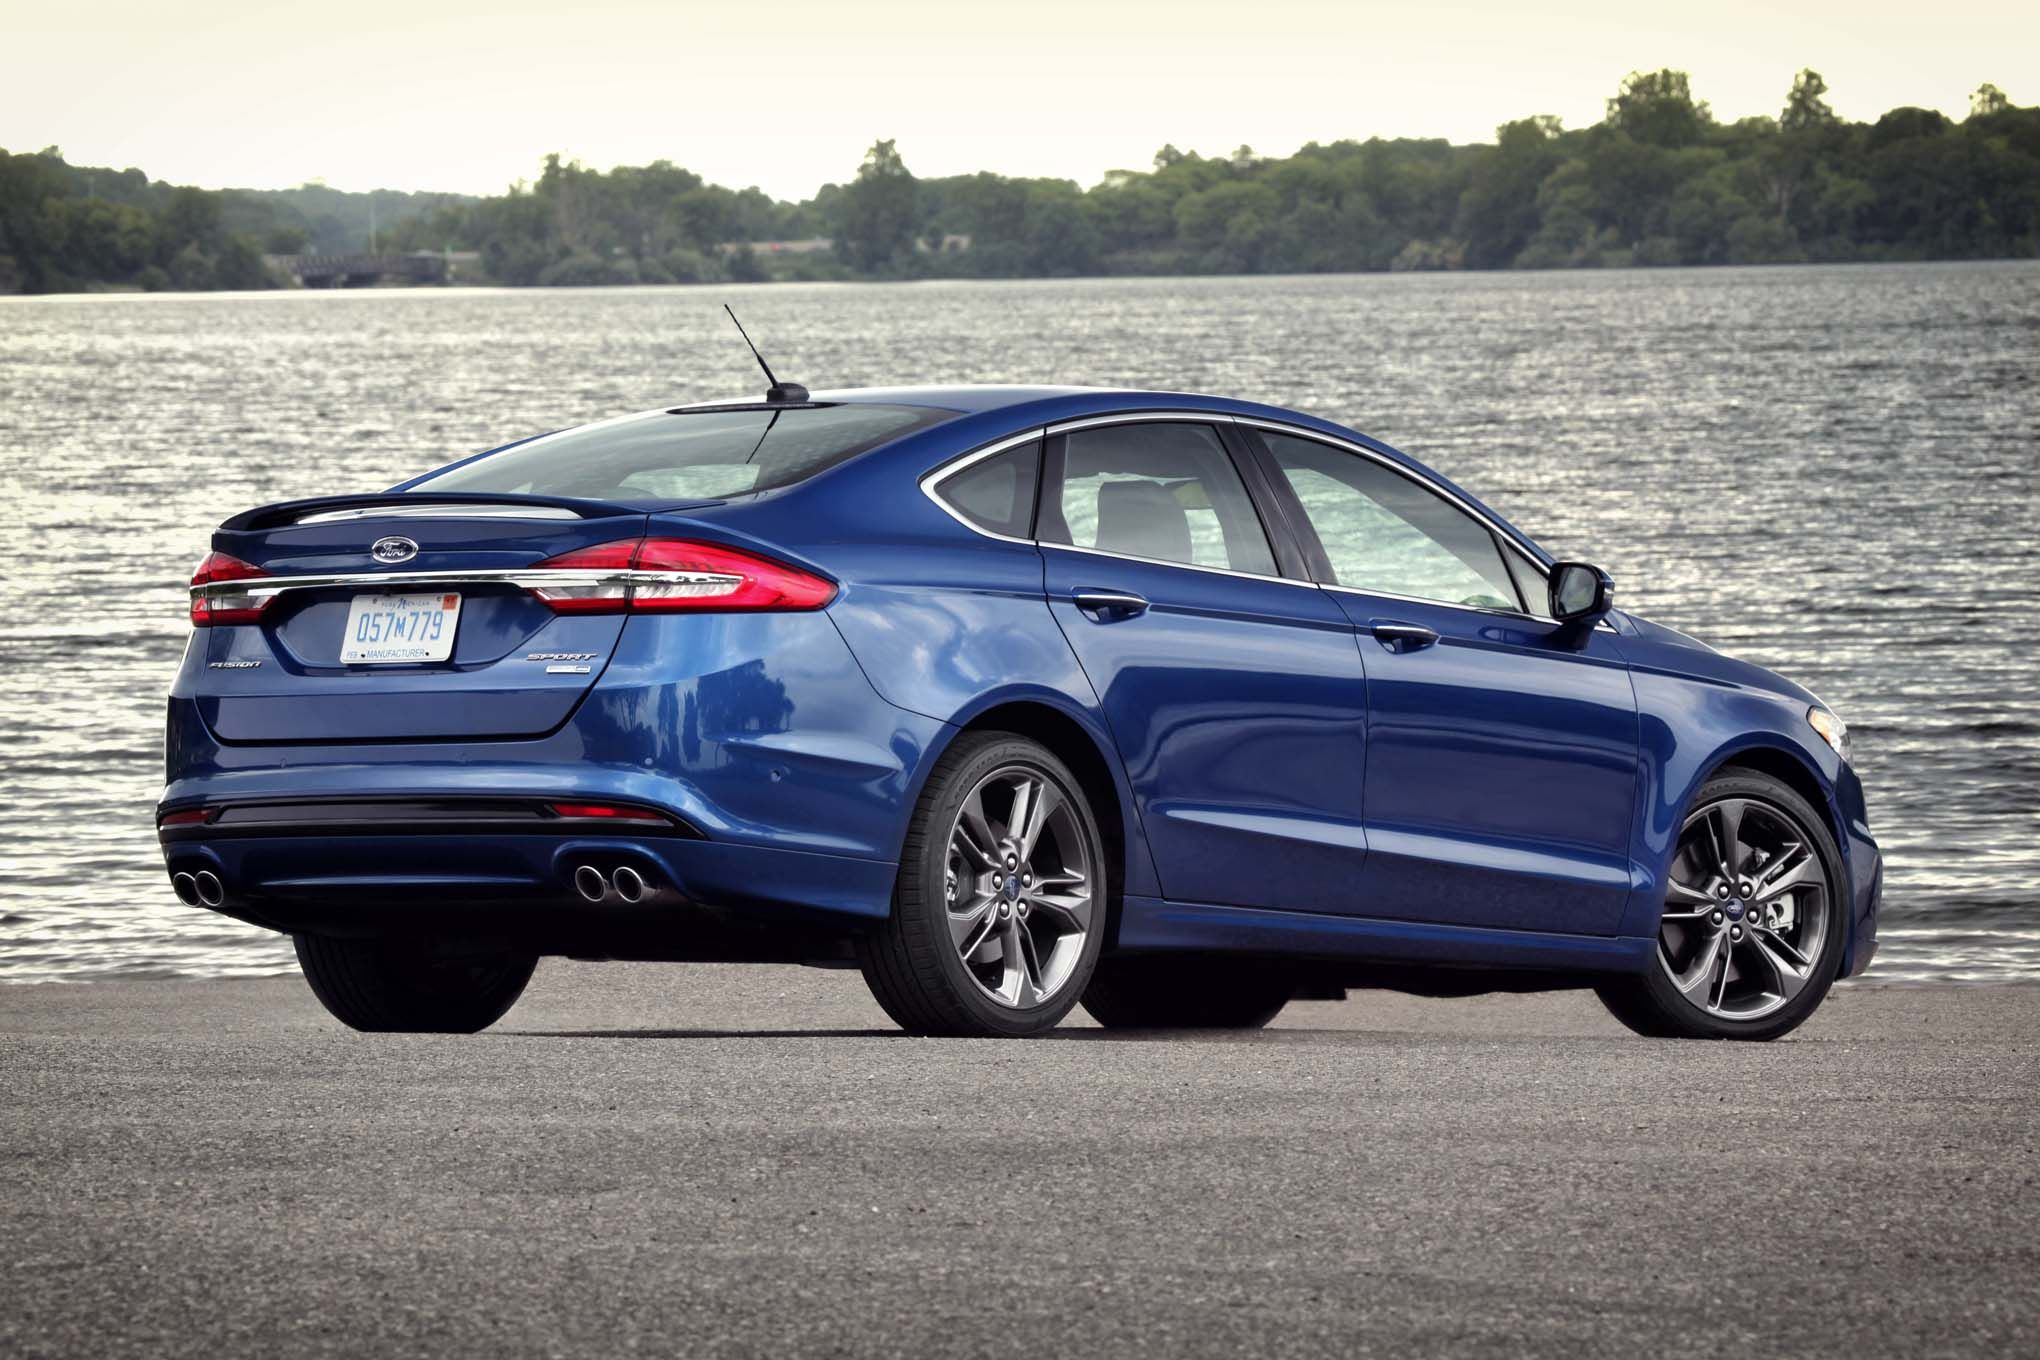 2017 Ford Fusion Ford Fusion Ford Mondeo New Cars For Sale